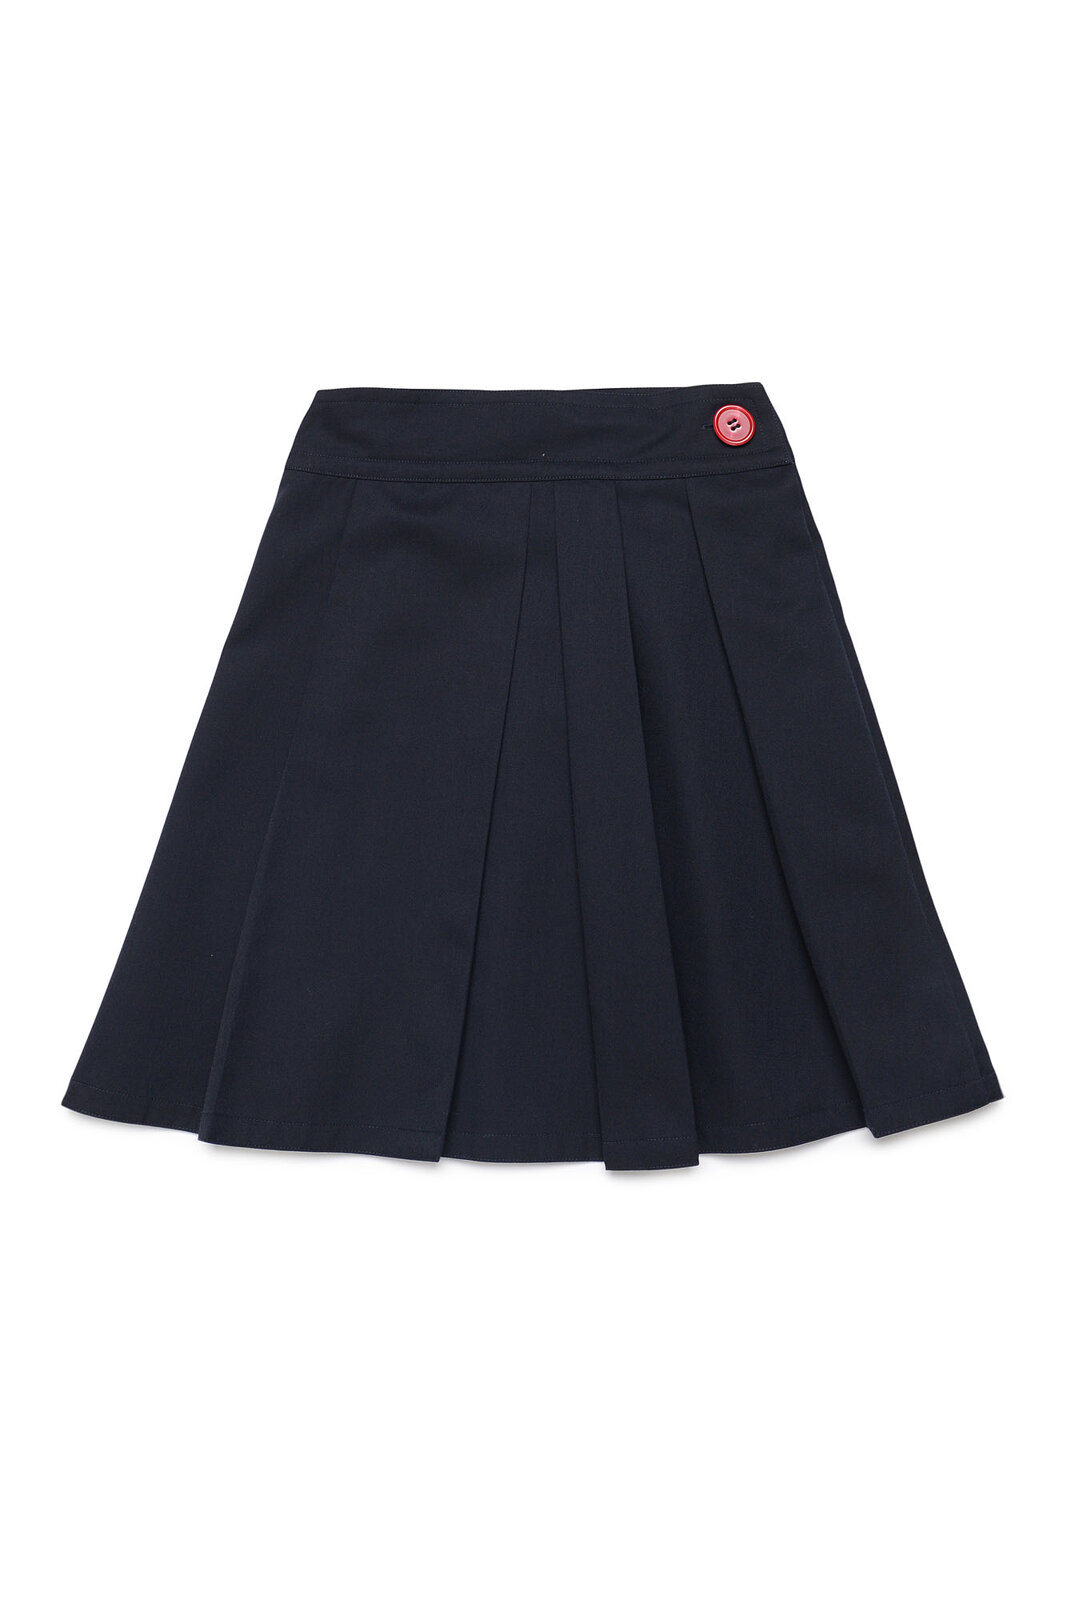 Skirt - Marni Junior